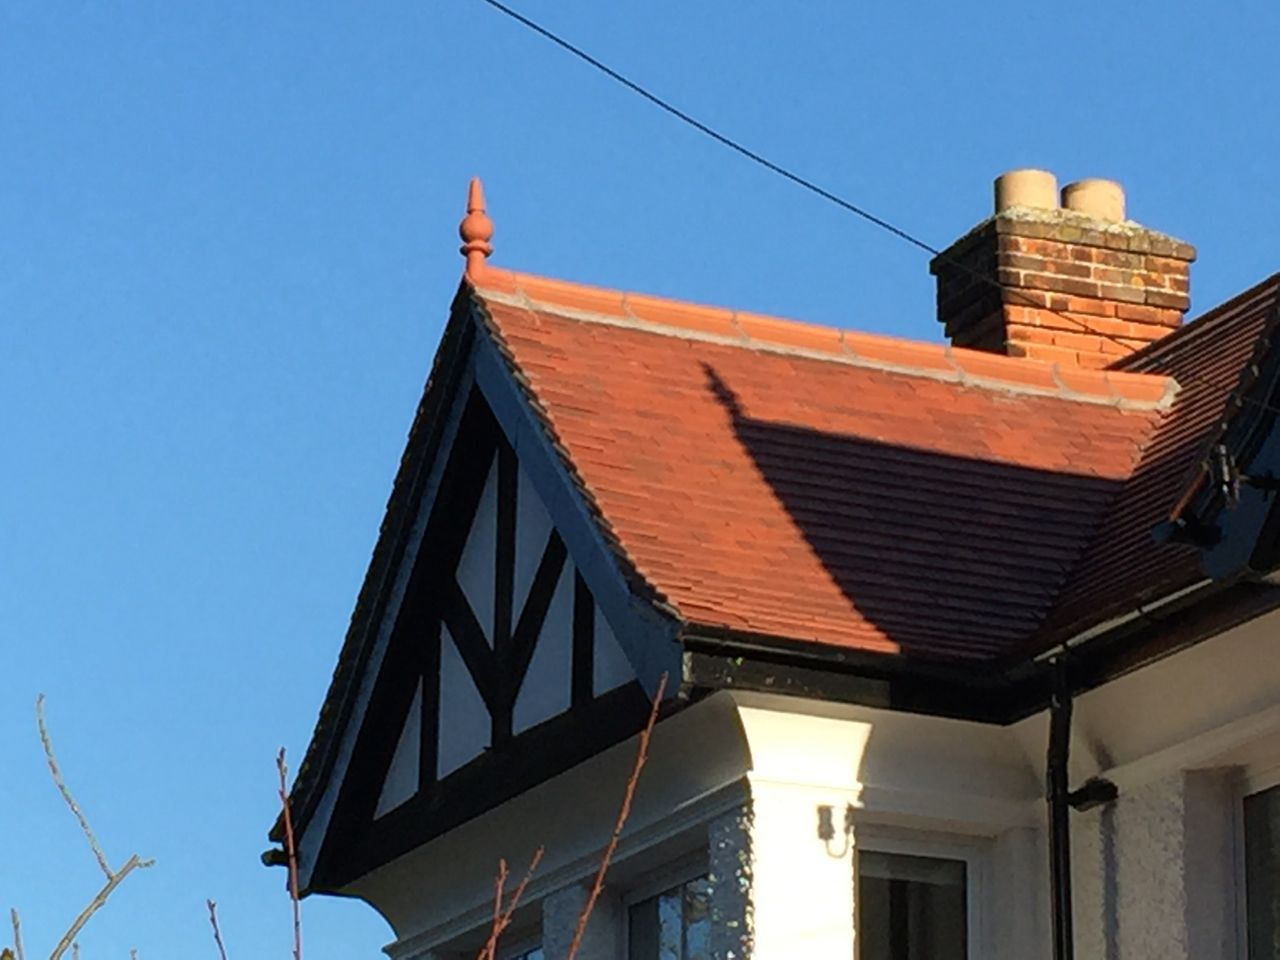 terracott roll top roof finials marley red smooth colour